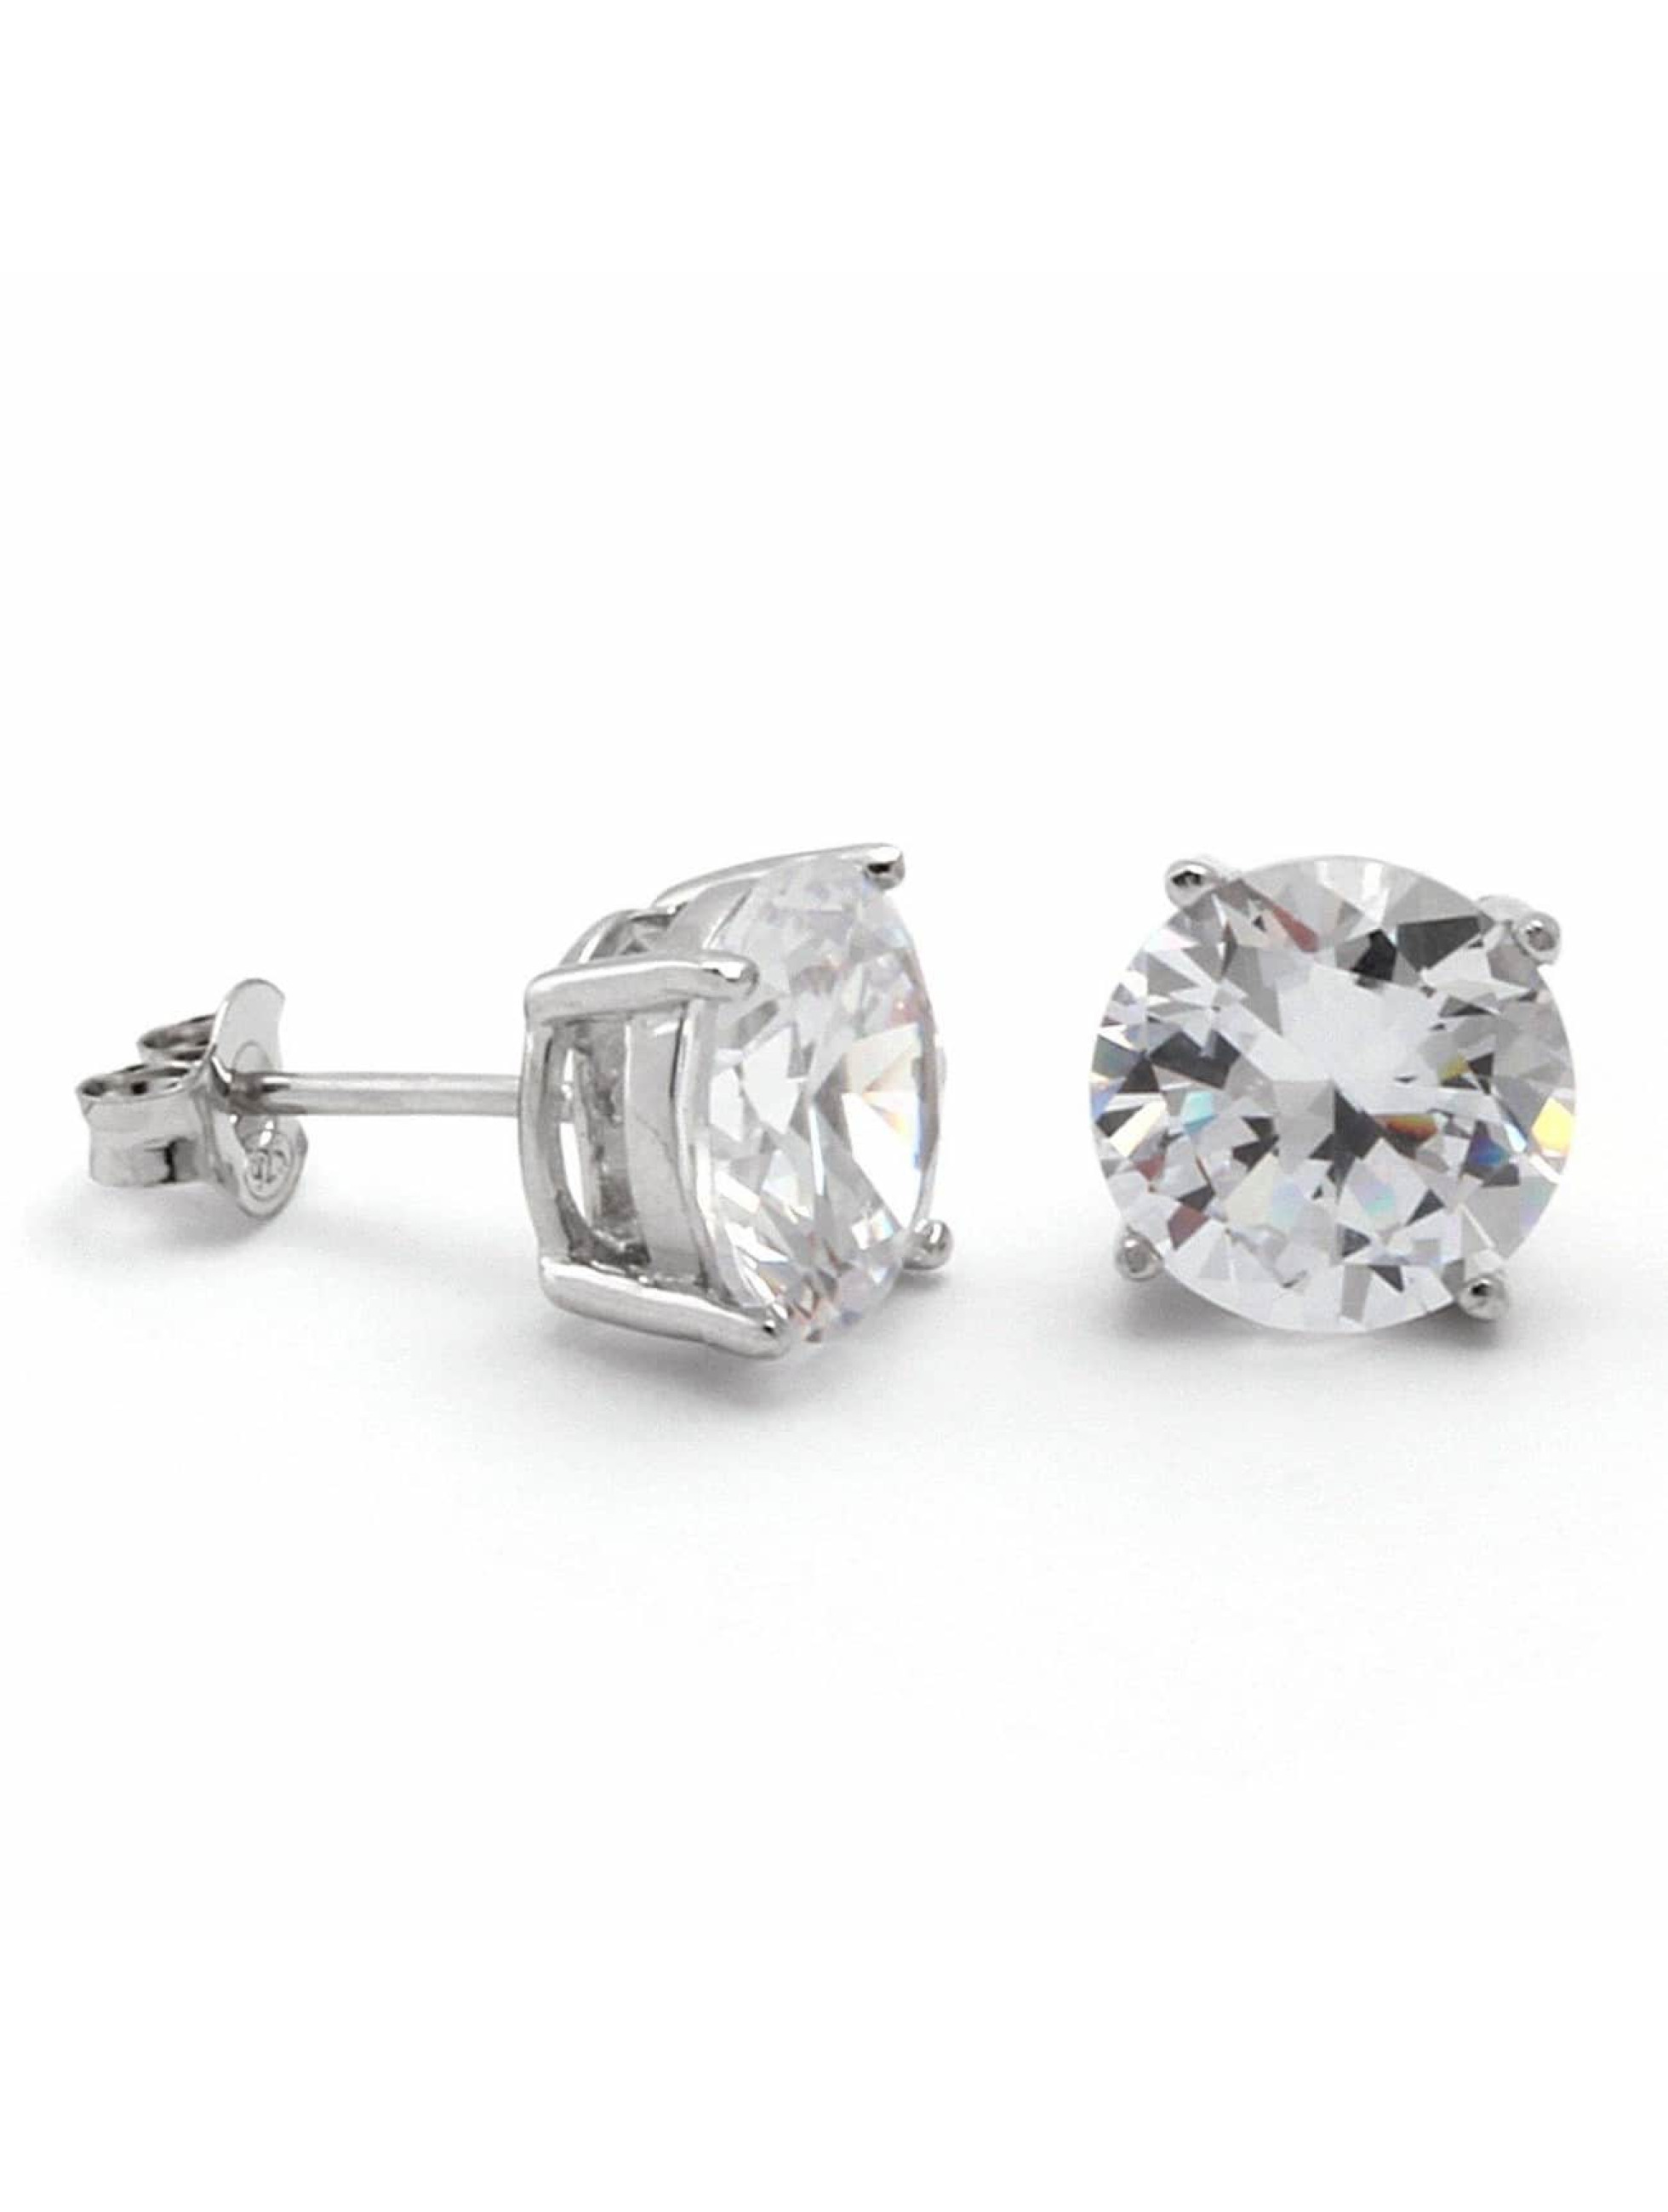 KING ICE Earring Rhodium_Plated 6mm 925 Sterling_Silver CZ silver